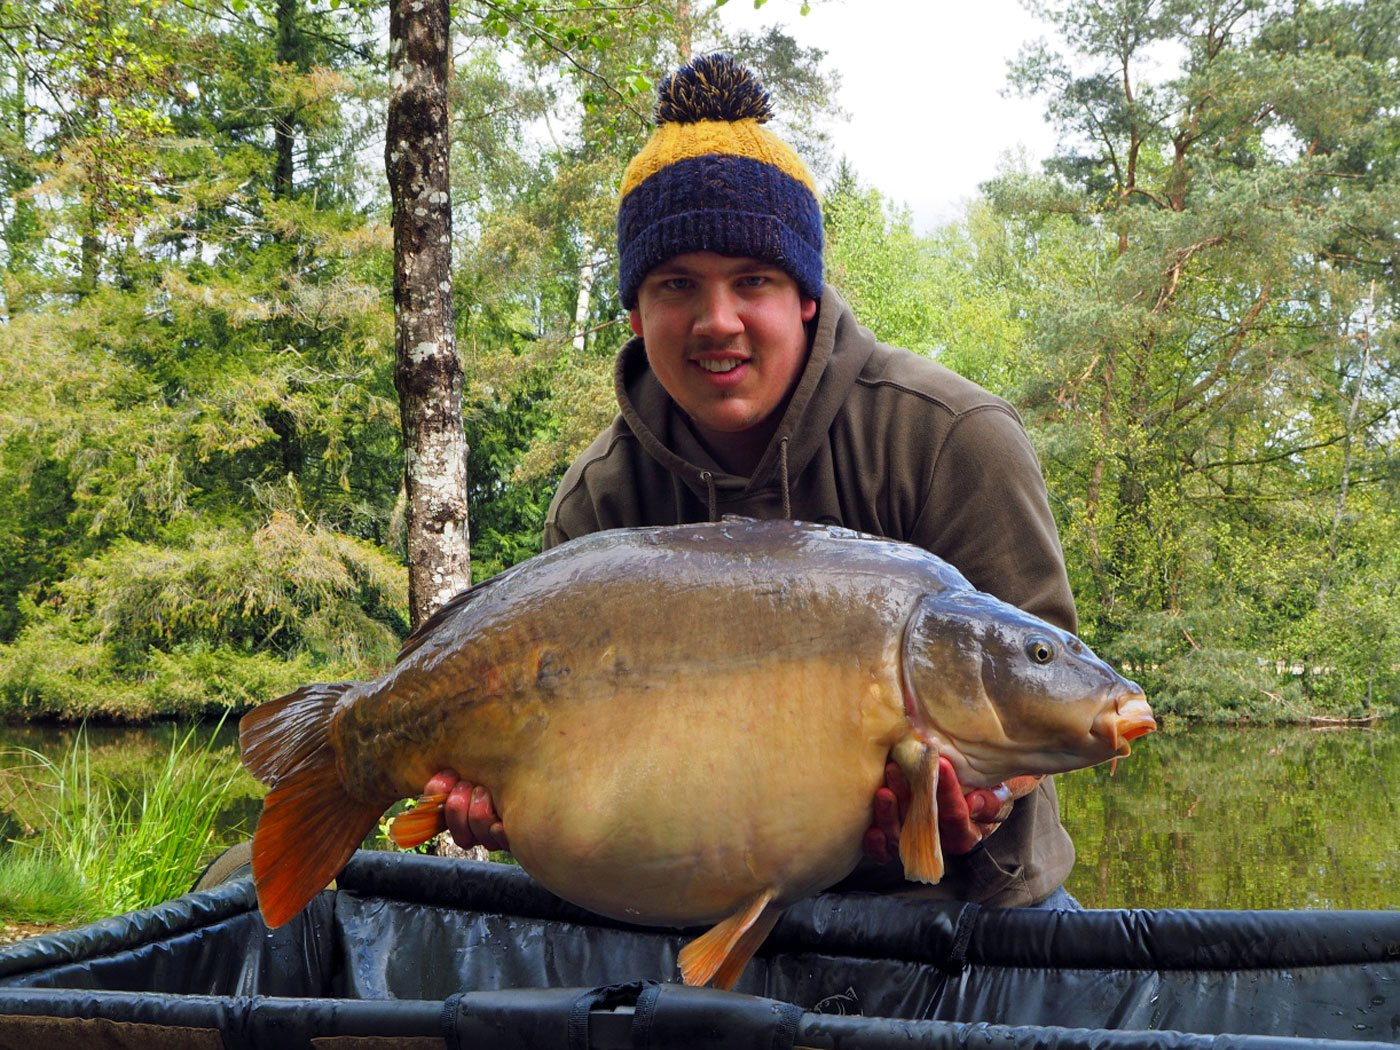 Adam with rarely seen Shorty at a top weight of 39lbs